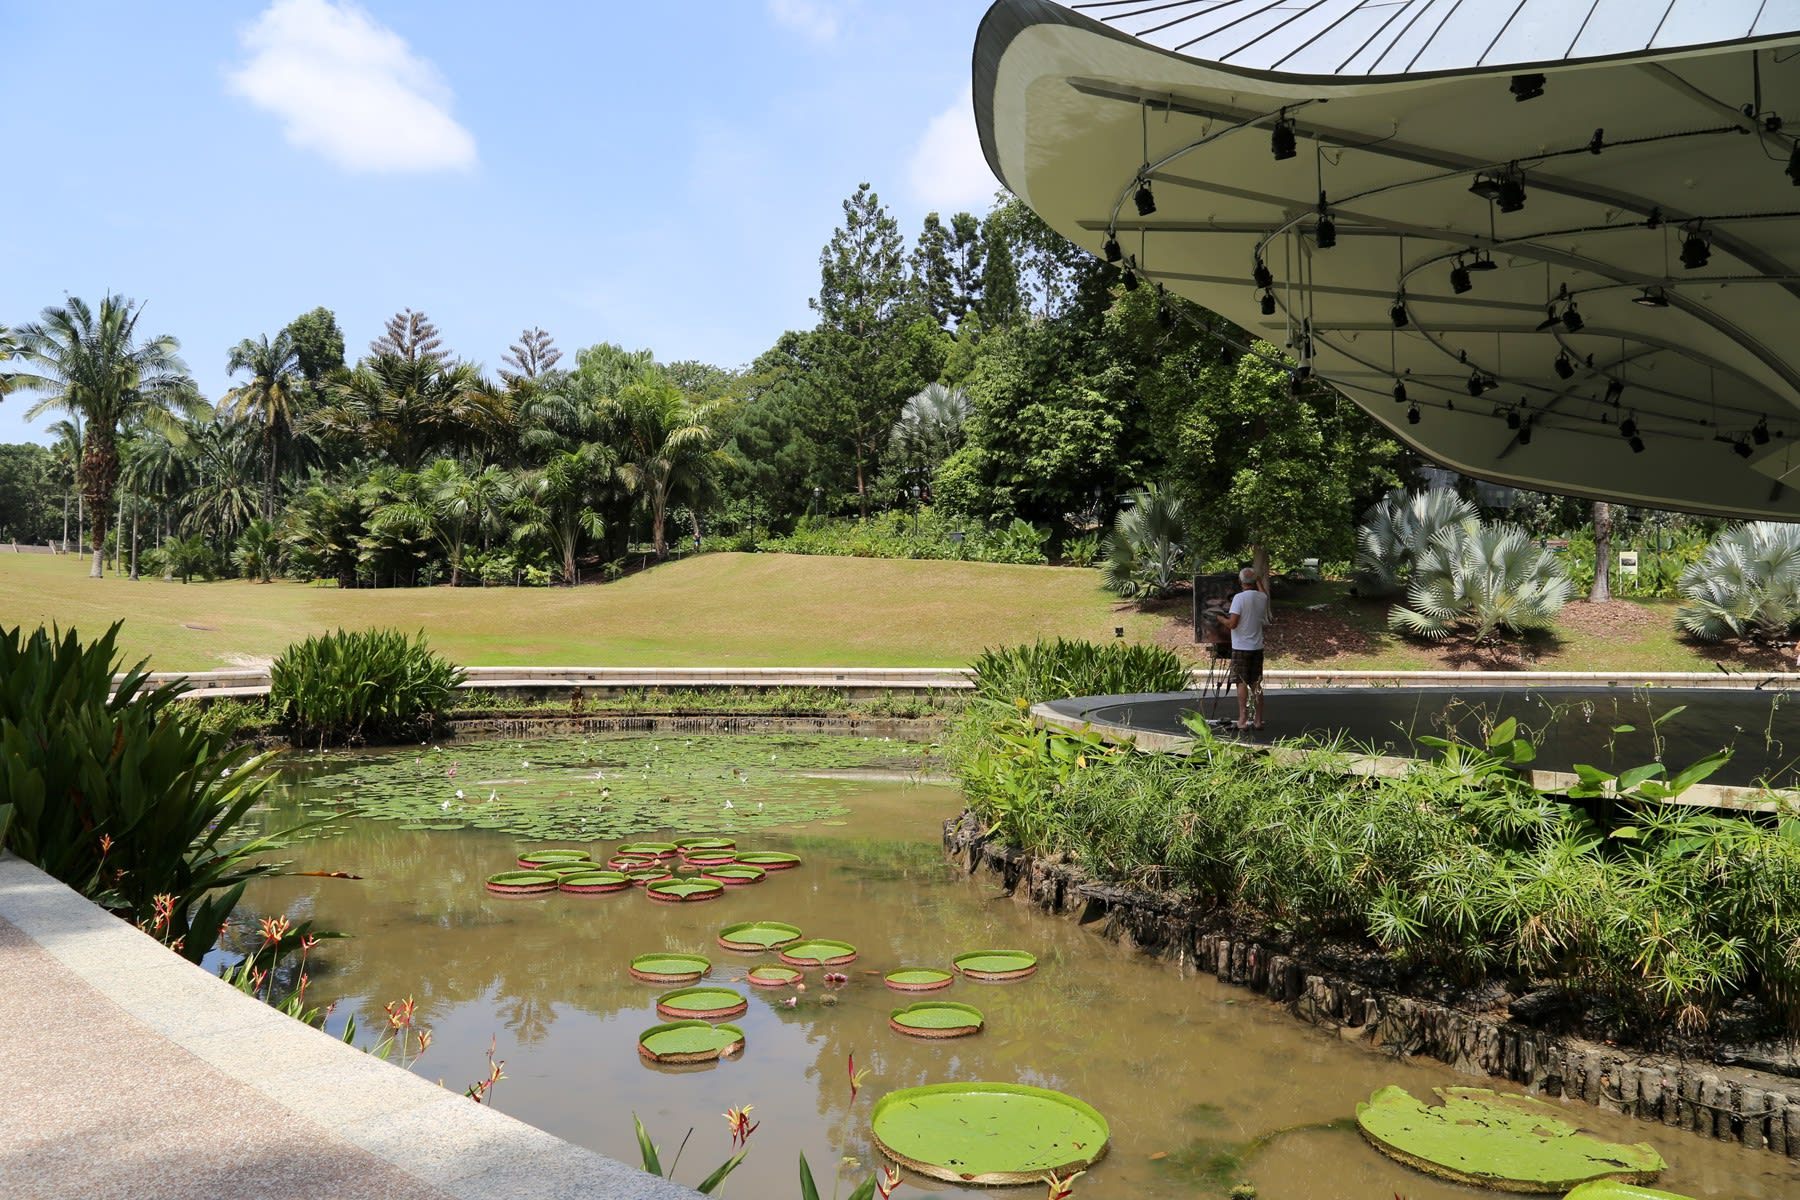 29 AUGUST 2019 SHAW FOUNDATION SYMPHONY STAGE, SINGAPORE BOTANIC GARDENS Victoria Water Lilies photo: Agata Byrne